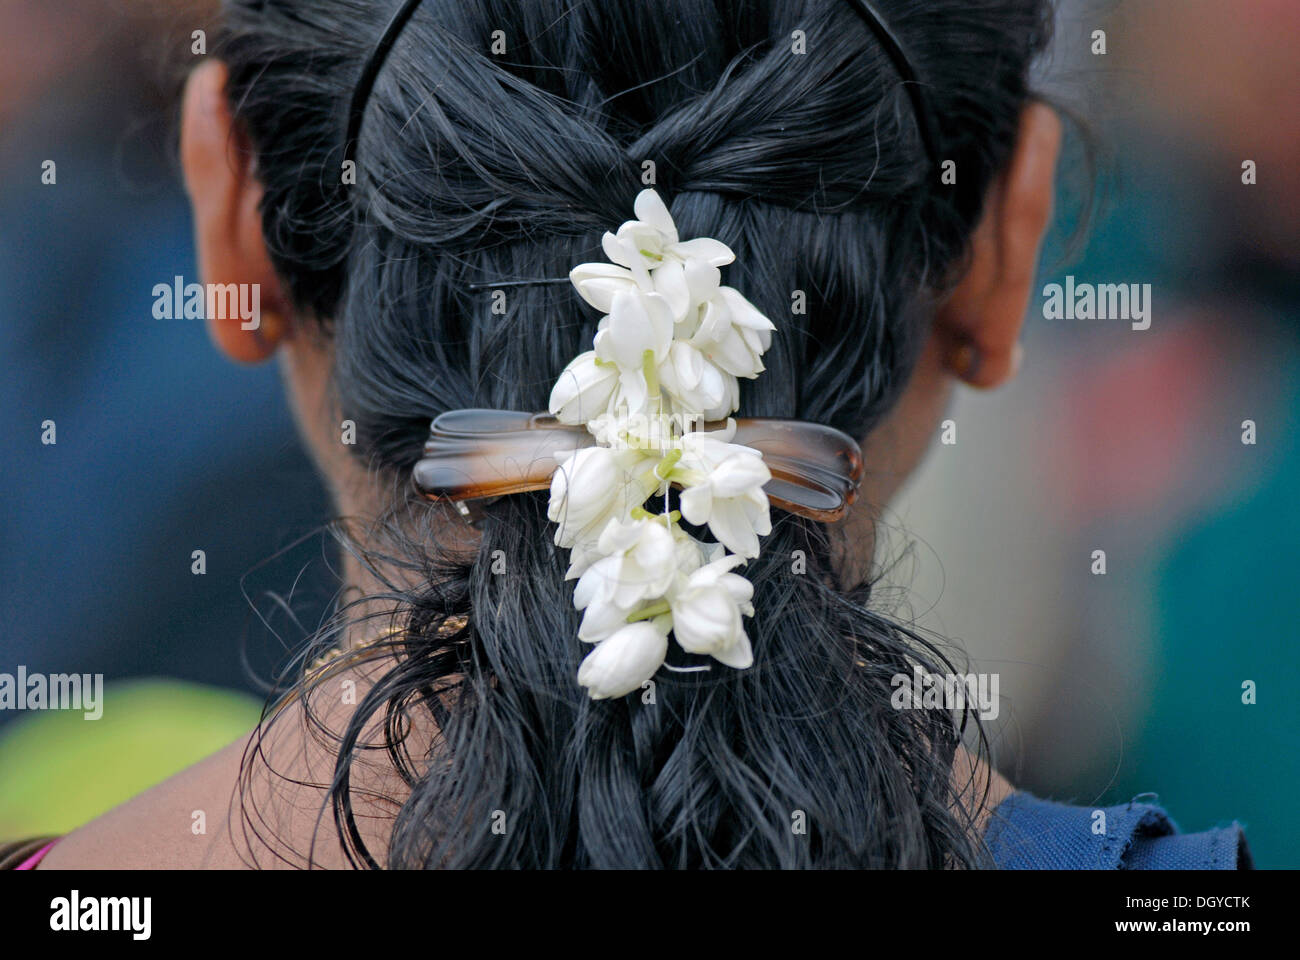 India jasmine hair stock photos india jasmine hair stock images woman with jasmine flowers in her hair guruvayur temple kerala southern india izmirmasajfo